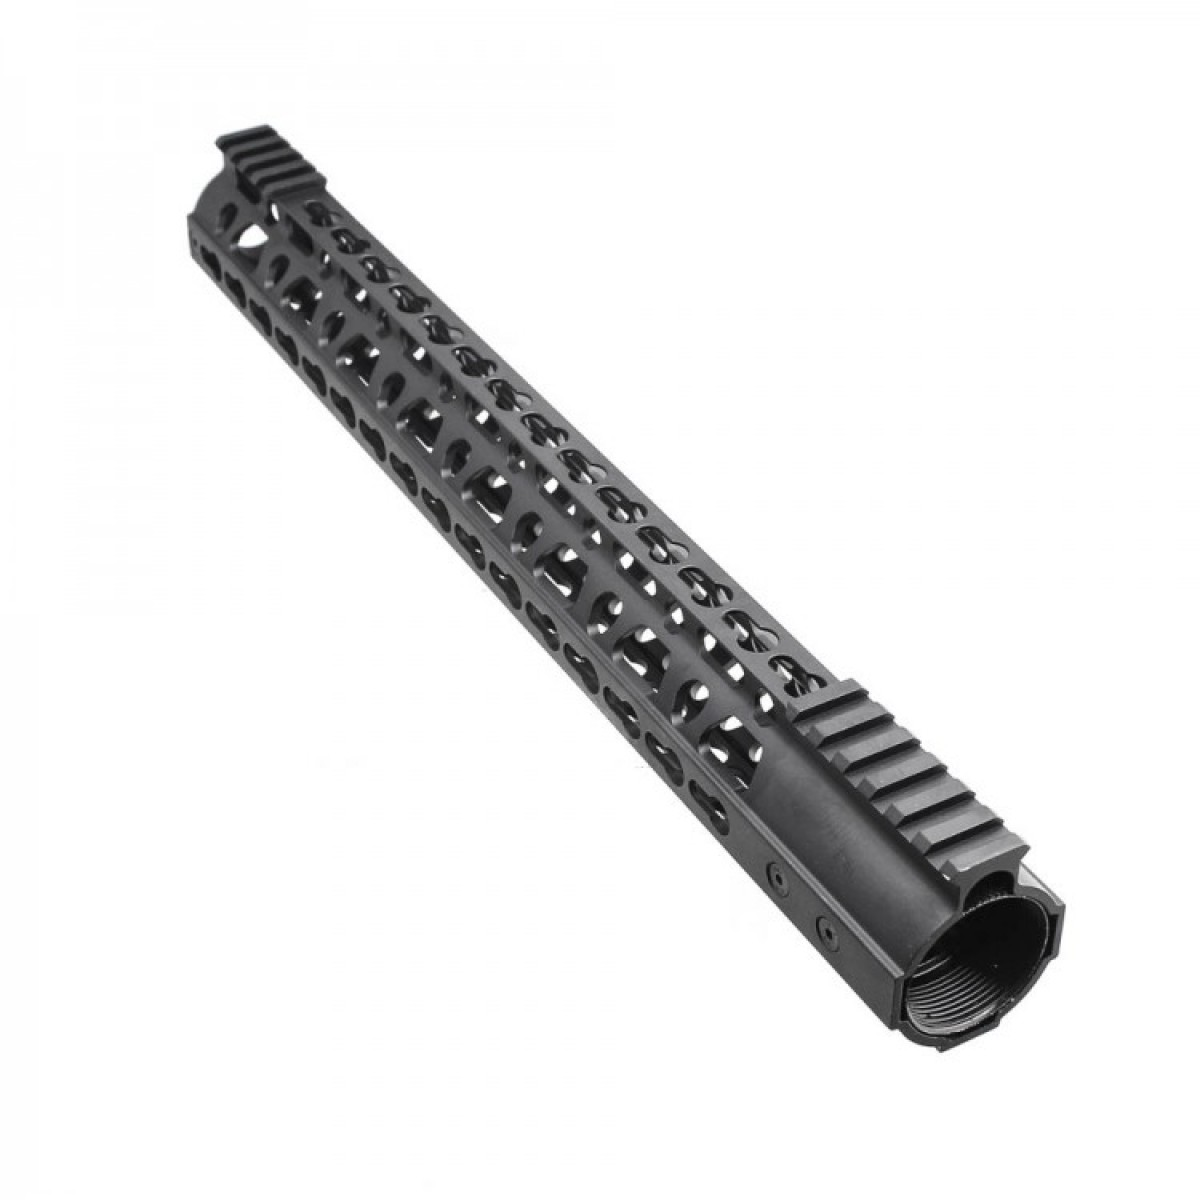 Ar10 Super Slim Light Keymod Free Float Handguard W Steel